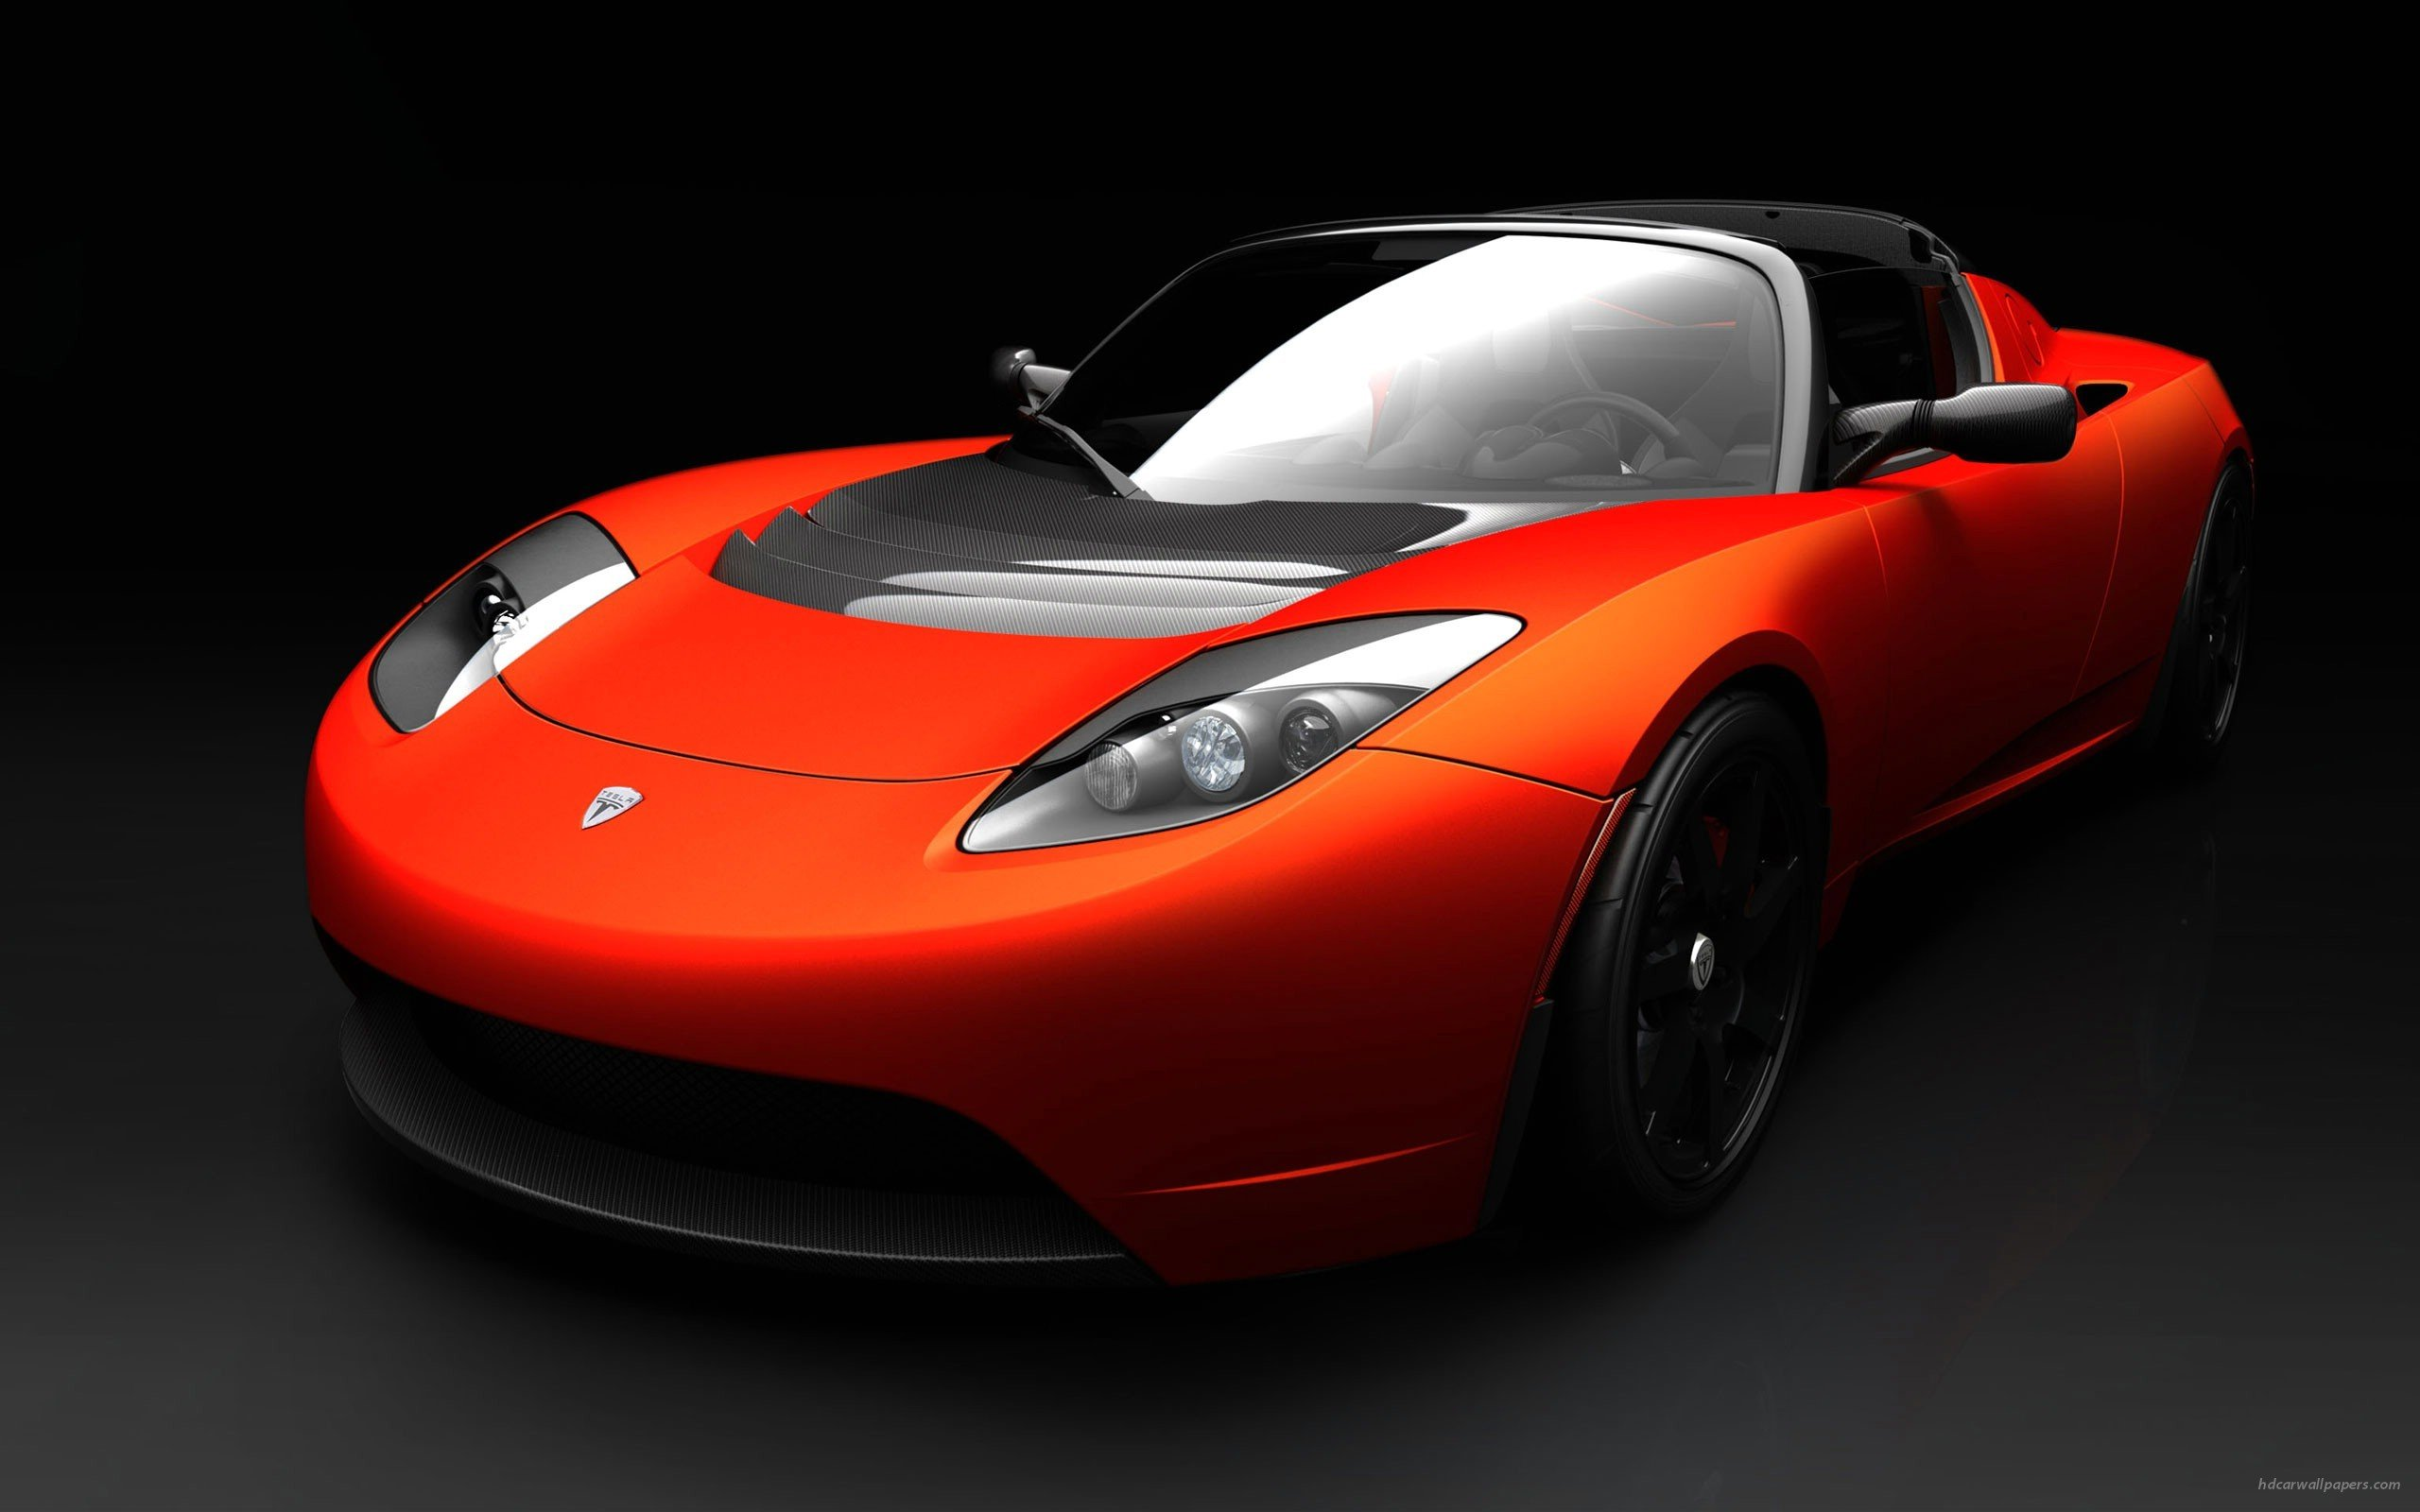 Tesla Roadster Wallpapers Top Free Tesla Roadster Backgrounds Wallpaperaccess